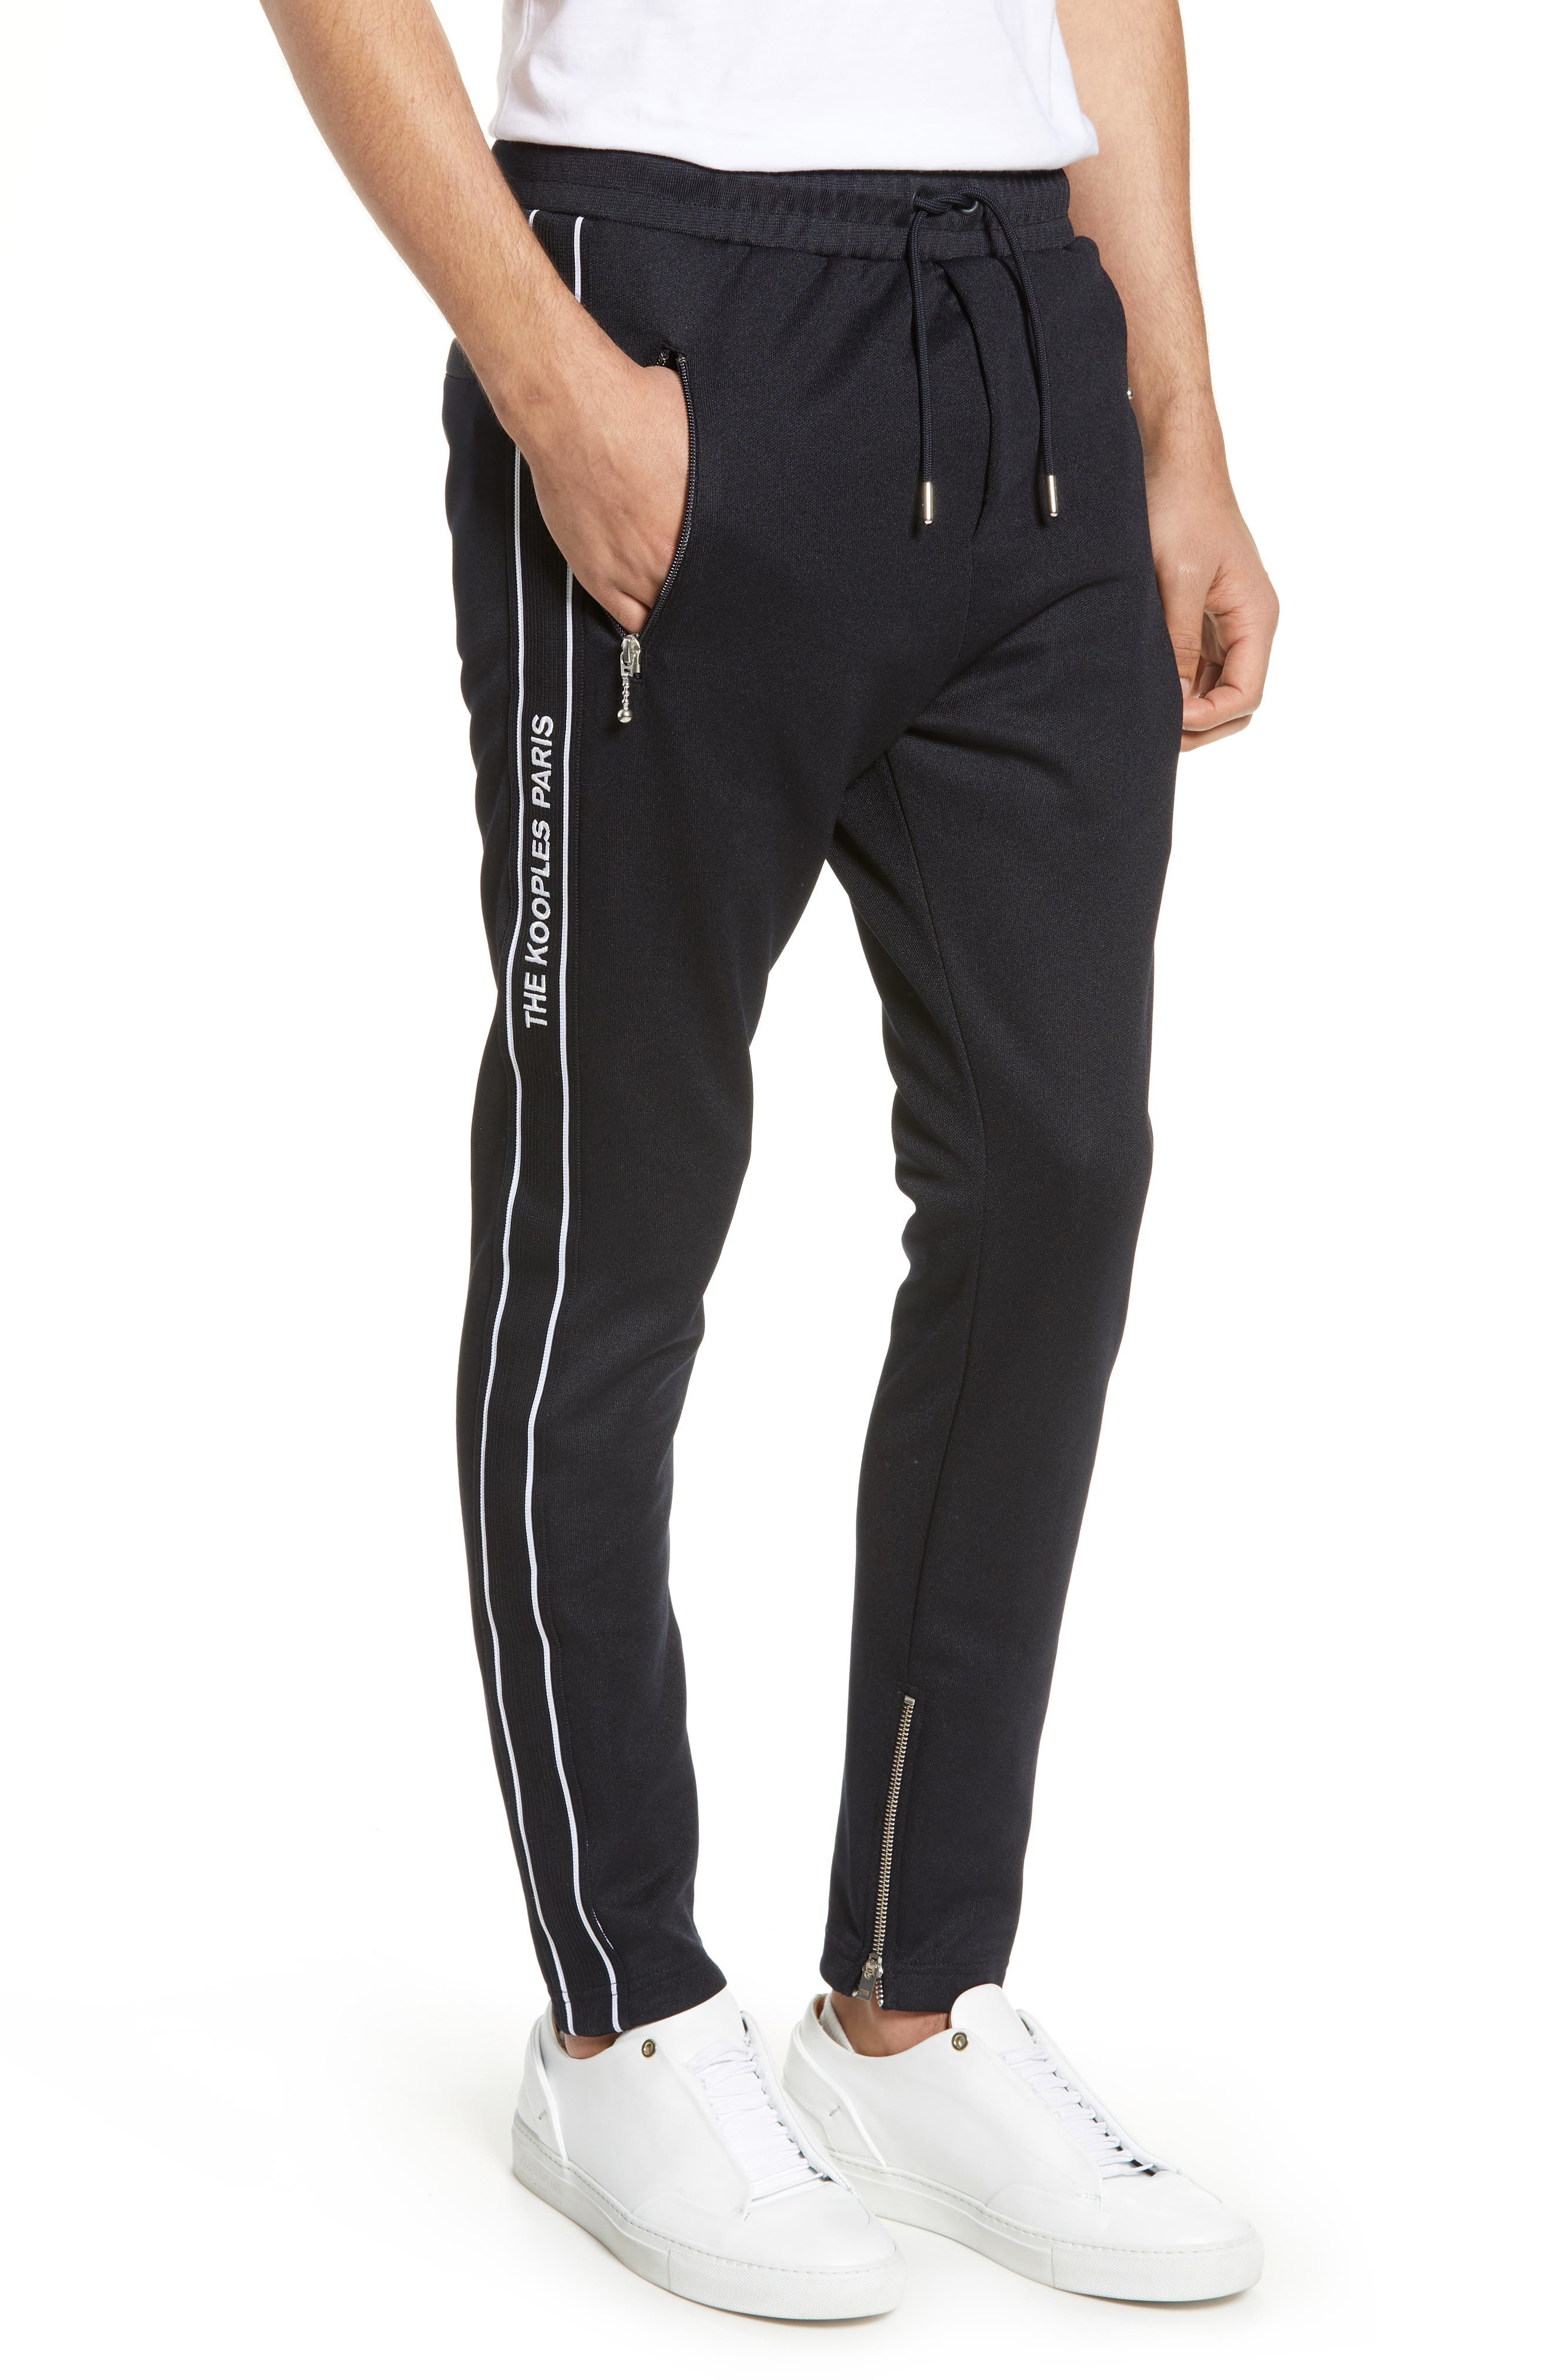 Jogger Pants by The Kooples